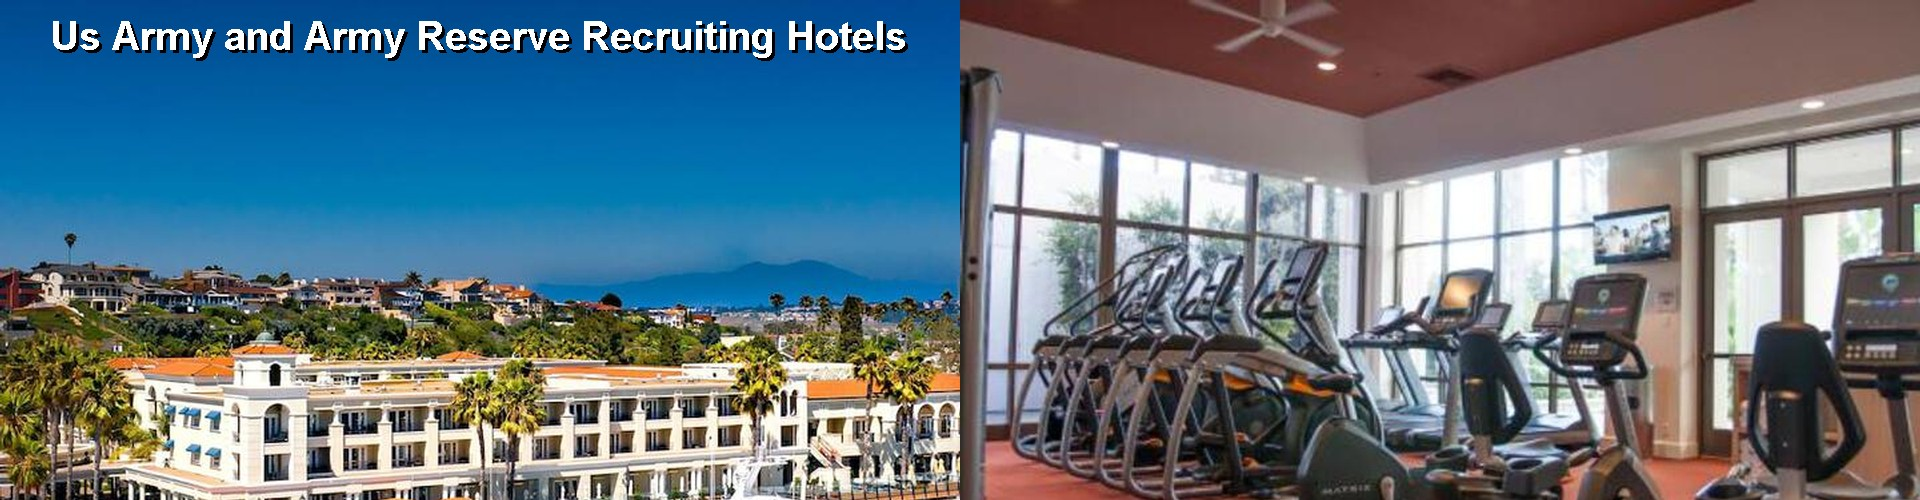 5 Best Hotels near Us Army and Army Reserve Recruiting